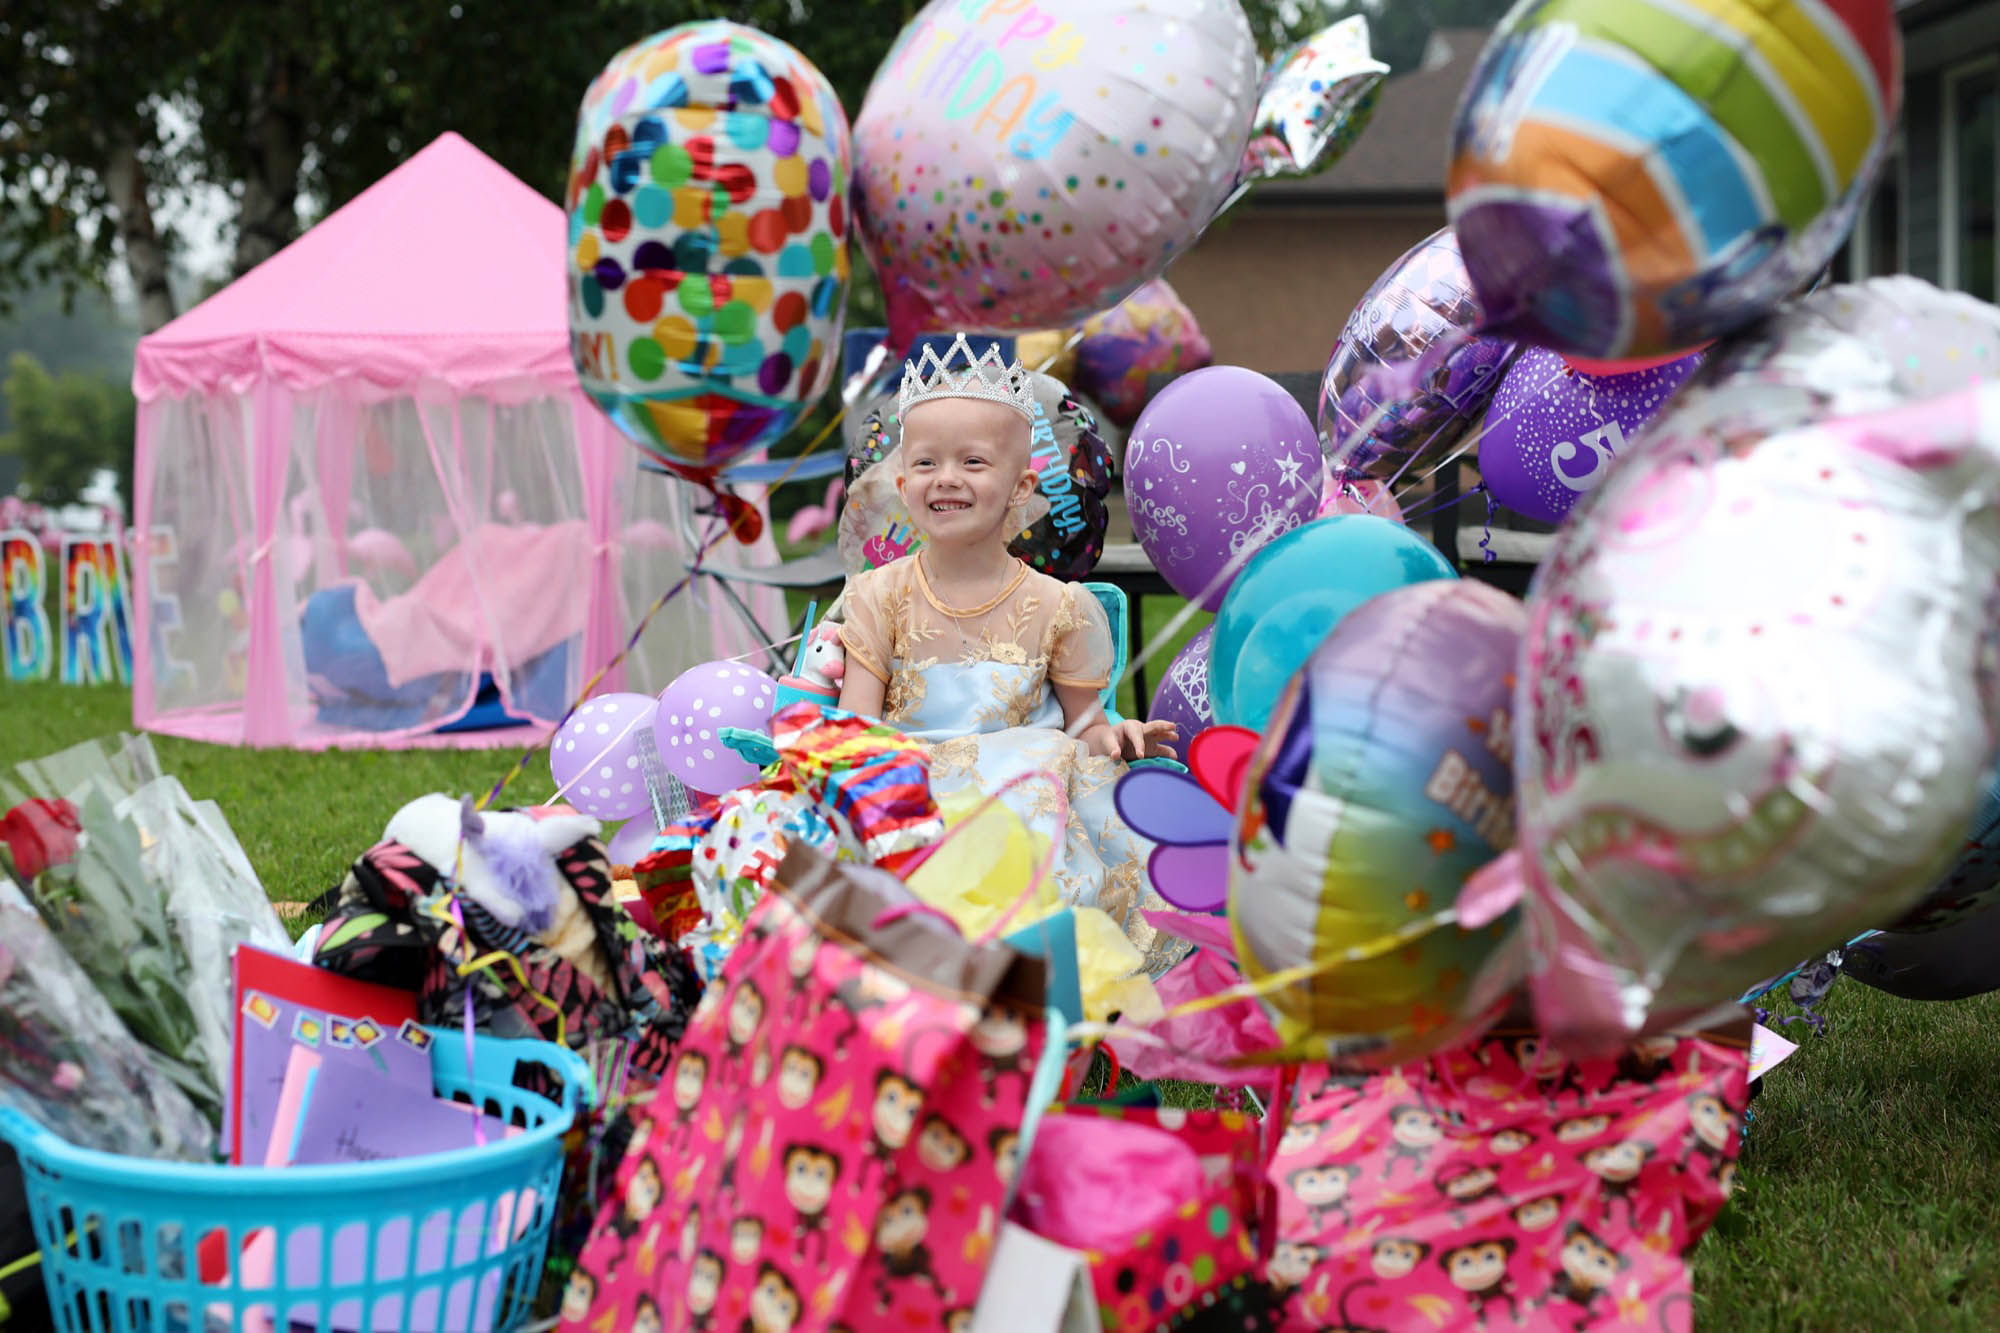 Five-year-old Brie Hall is surrounded by some of the presents she received during a special birthday parade on Tuesday evening. Dozens of vehicles lining multiple city blocks paraded past Brie, who has Ewing sarcoma, a rare type of cancer, dropping off presents and wishing her a happy birthday. Brie was diagnosed with cancer on Jan. 6, 2021 and travels to Winnipeg for chemotherapy treatment every two weeks.  (Tim Smith/The Brandon Sun)